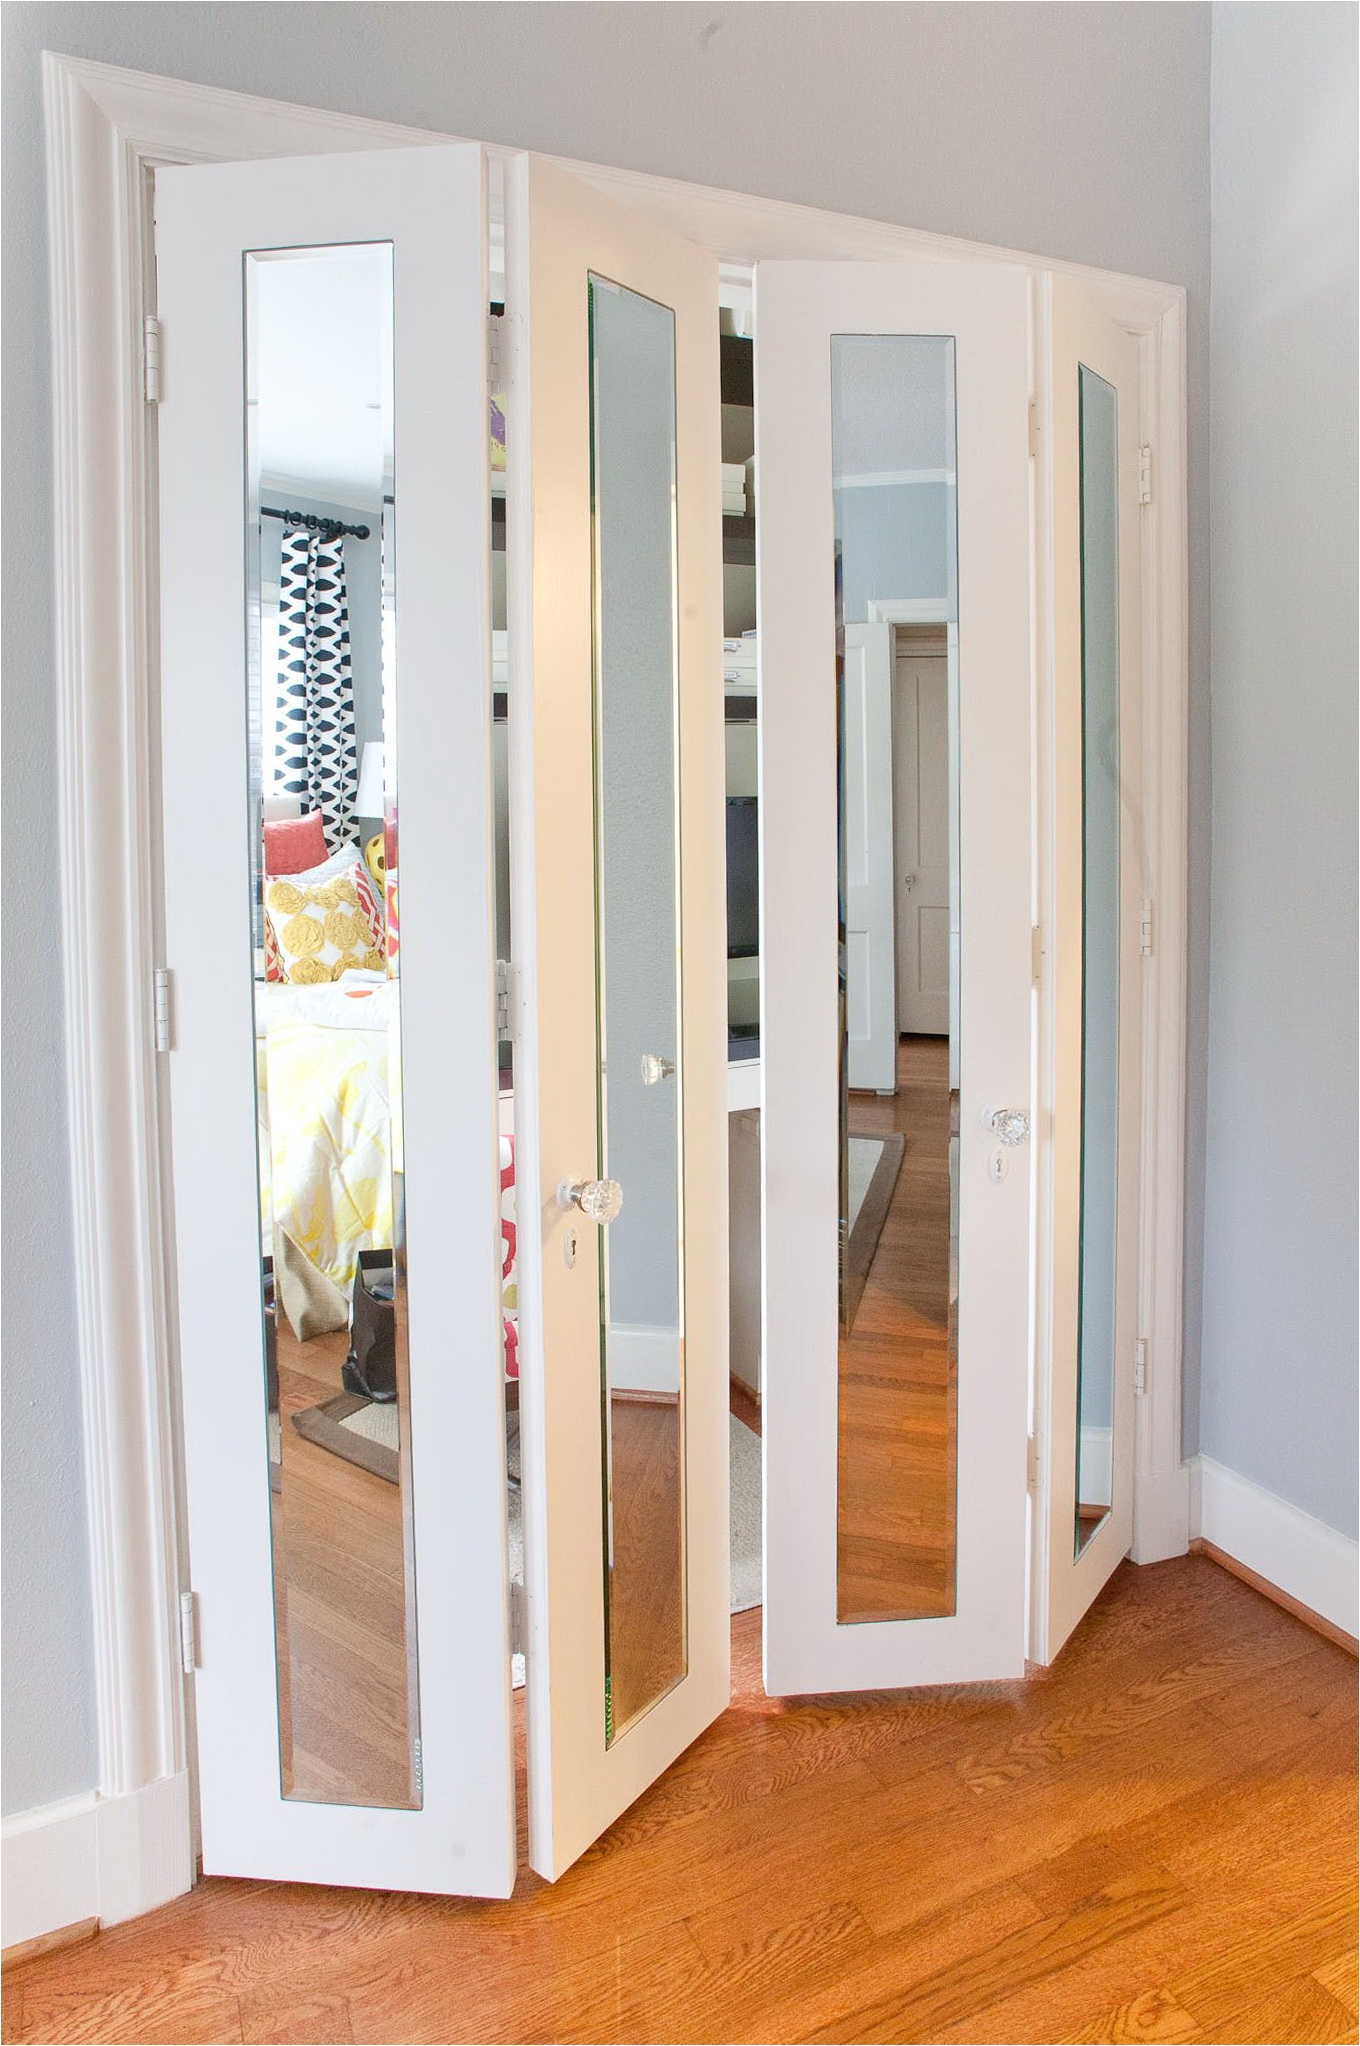 Sliding Interior Closet Doors 6 Panel Closet Doors Bifold Gallery Doors  Design Modern